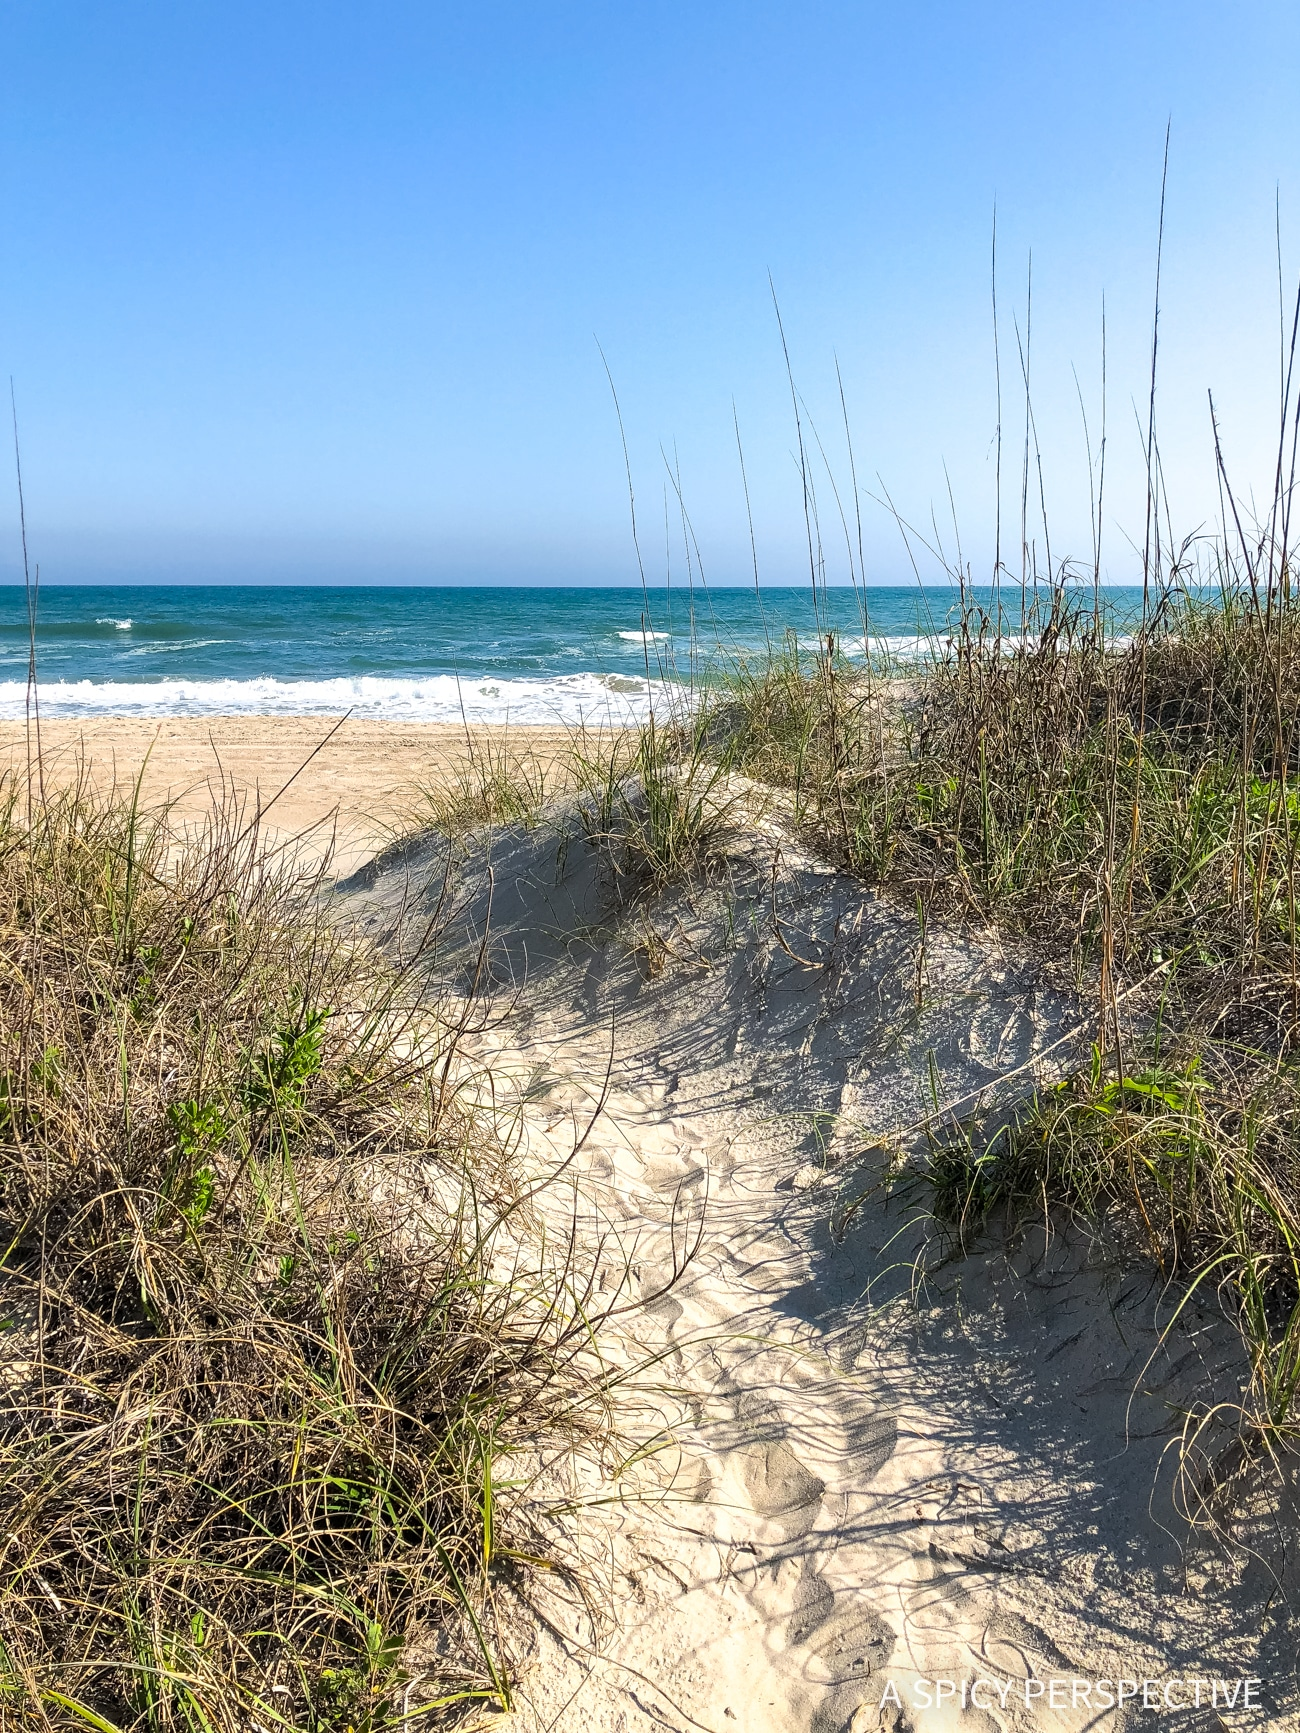 Why You Should Visit The Crystal Coast Outer Banks NC (Emerald Isle Vacation Travel Tips!)